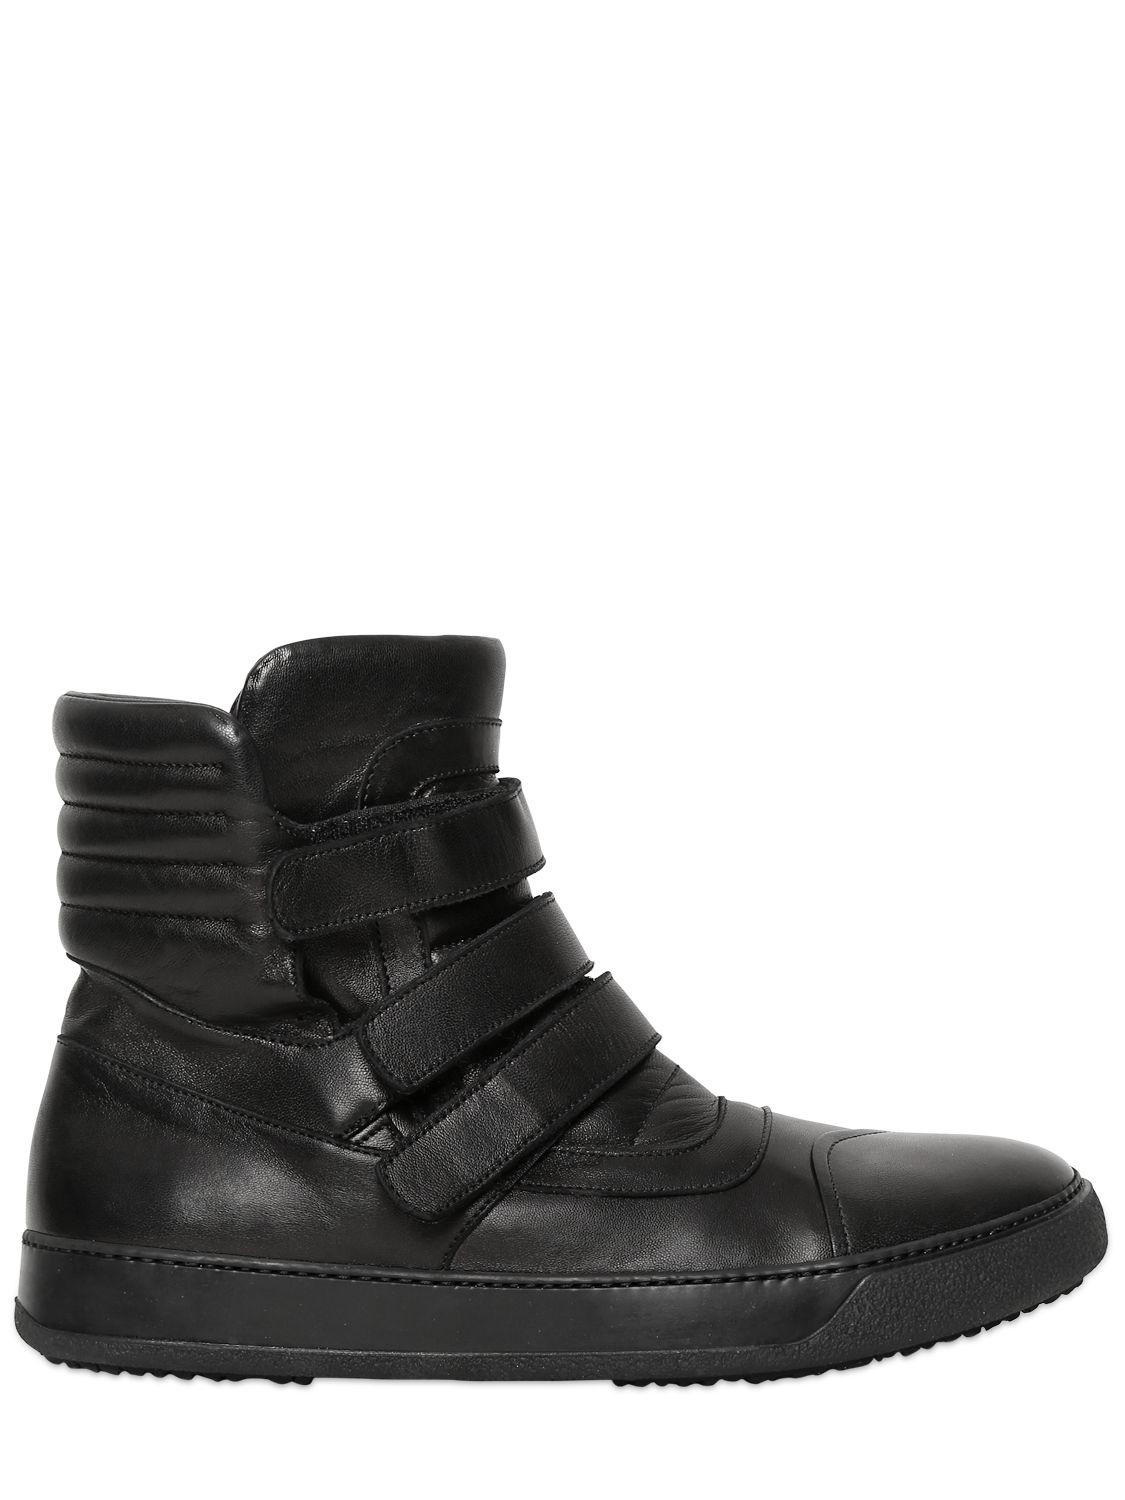 Bb Bruno Bordese Velcro Nappa Leather High Top Sneakers In